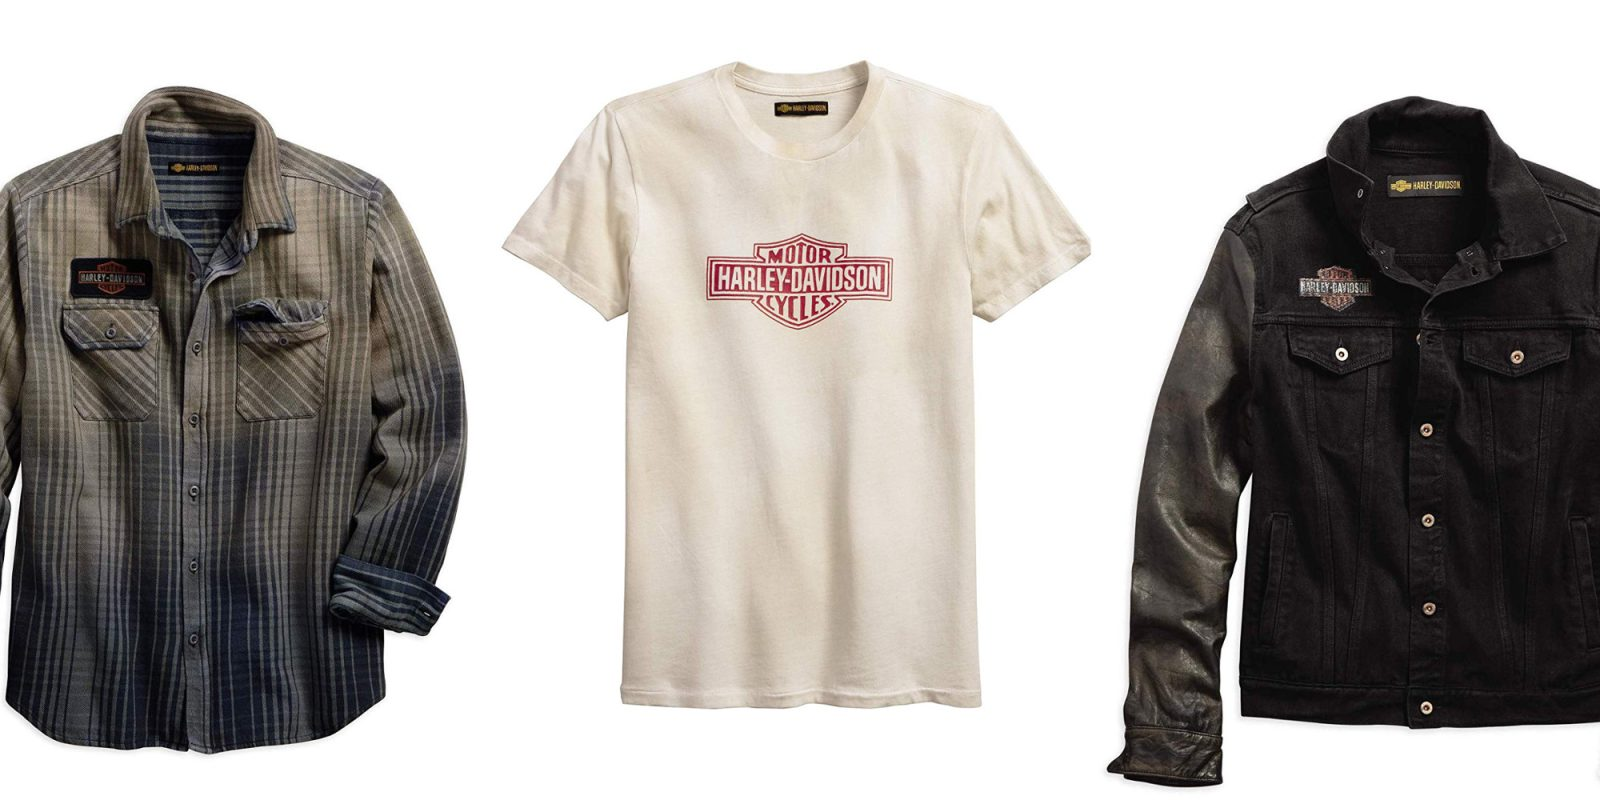 Harley-Davidson gear up to 35% off: T-shirts, leather jackets, more from $16